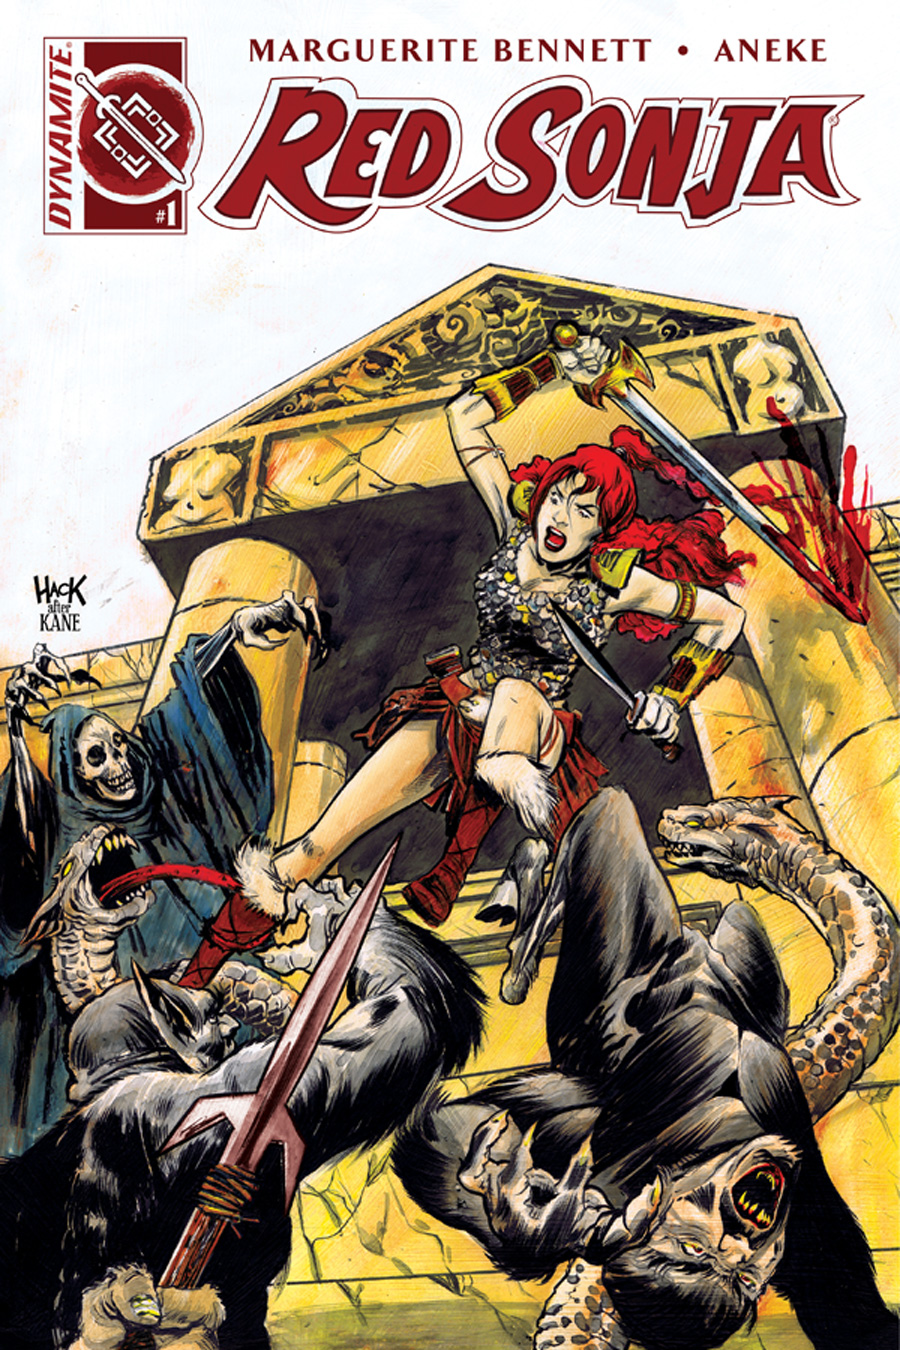 Red Sonja #1 Retailer Incentive Cover: Robert Hack